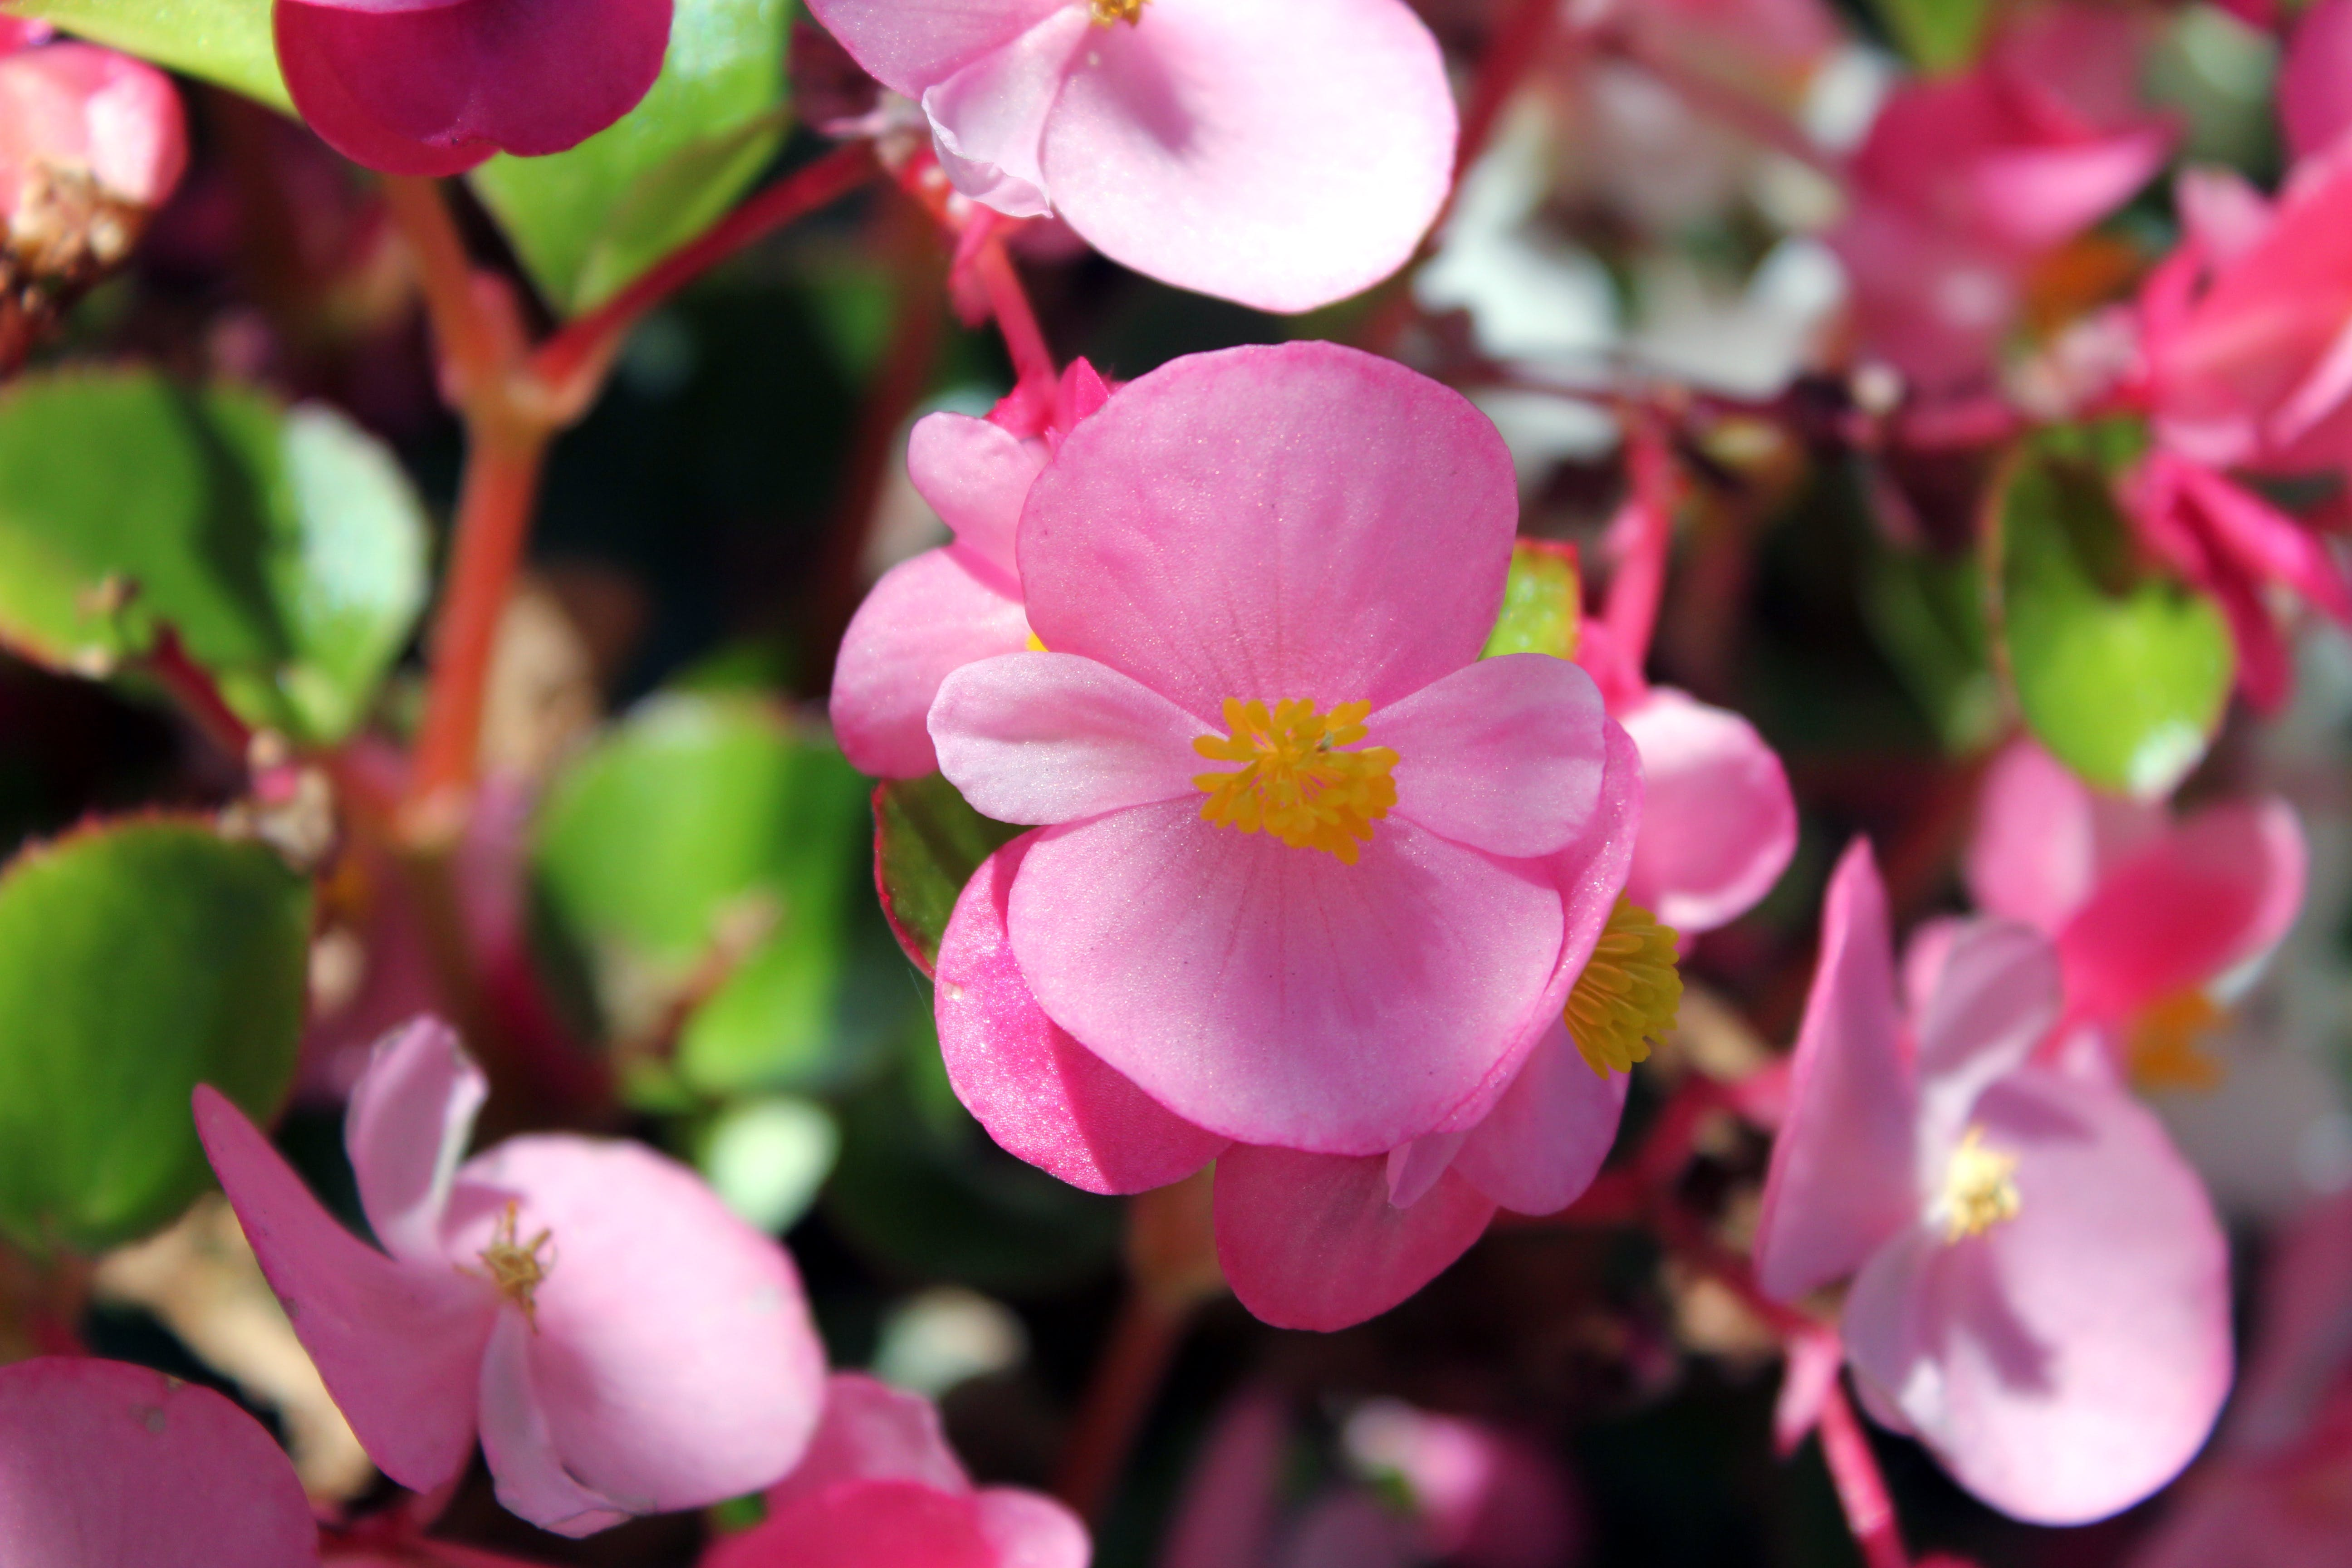 Free stock photo of pink flowers